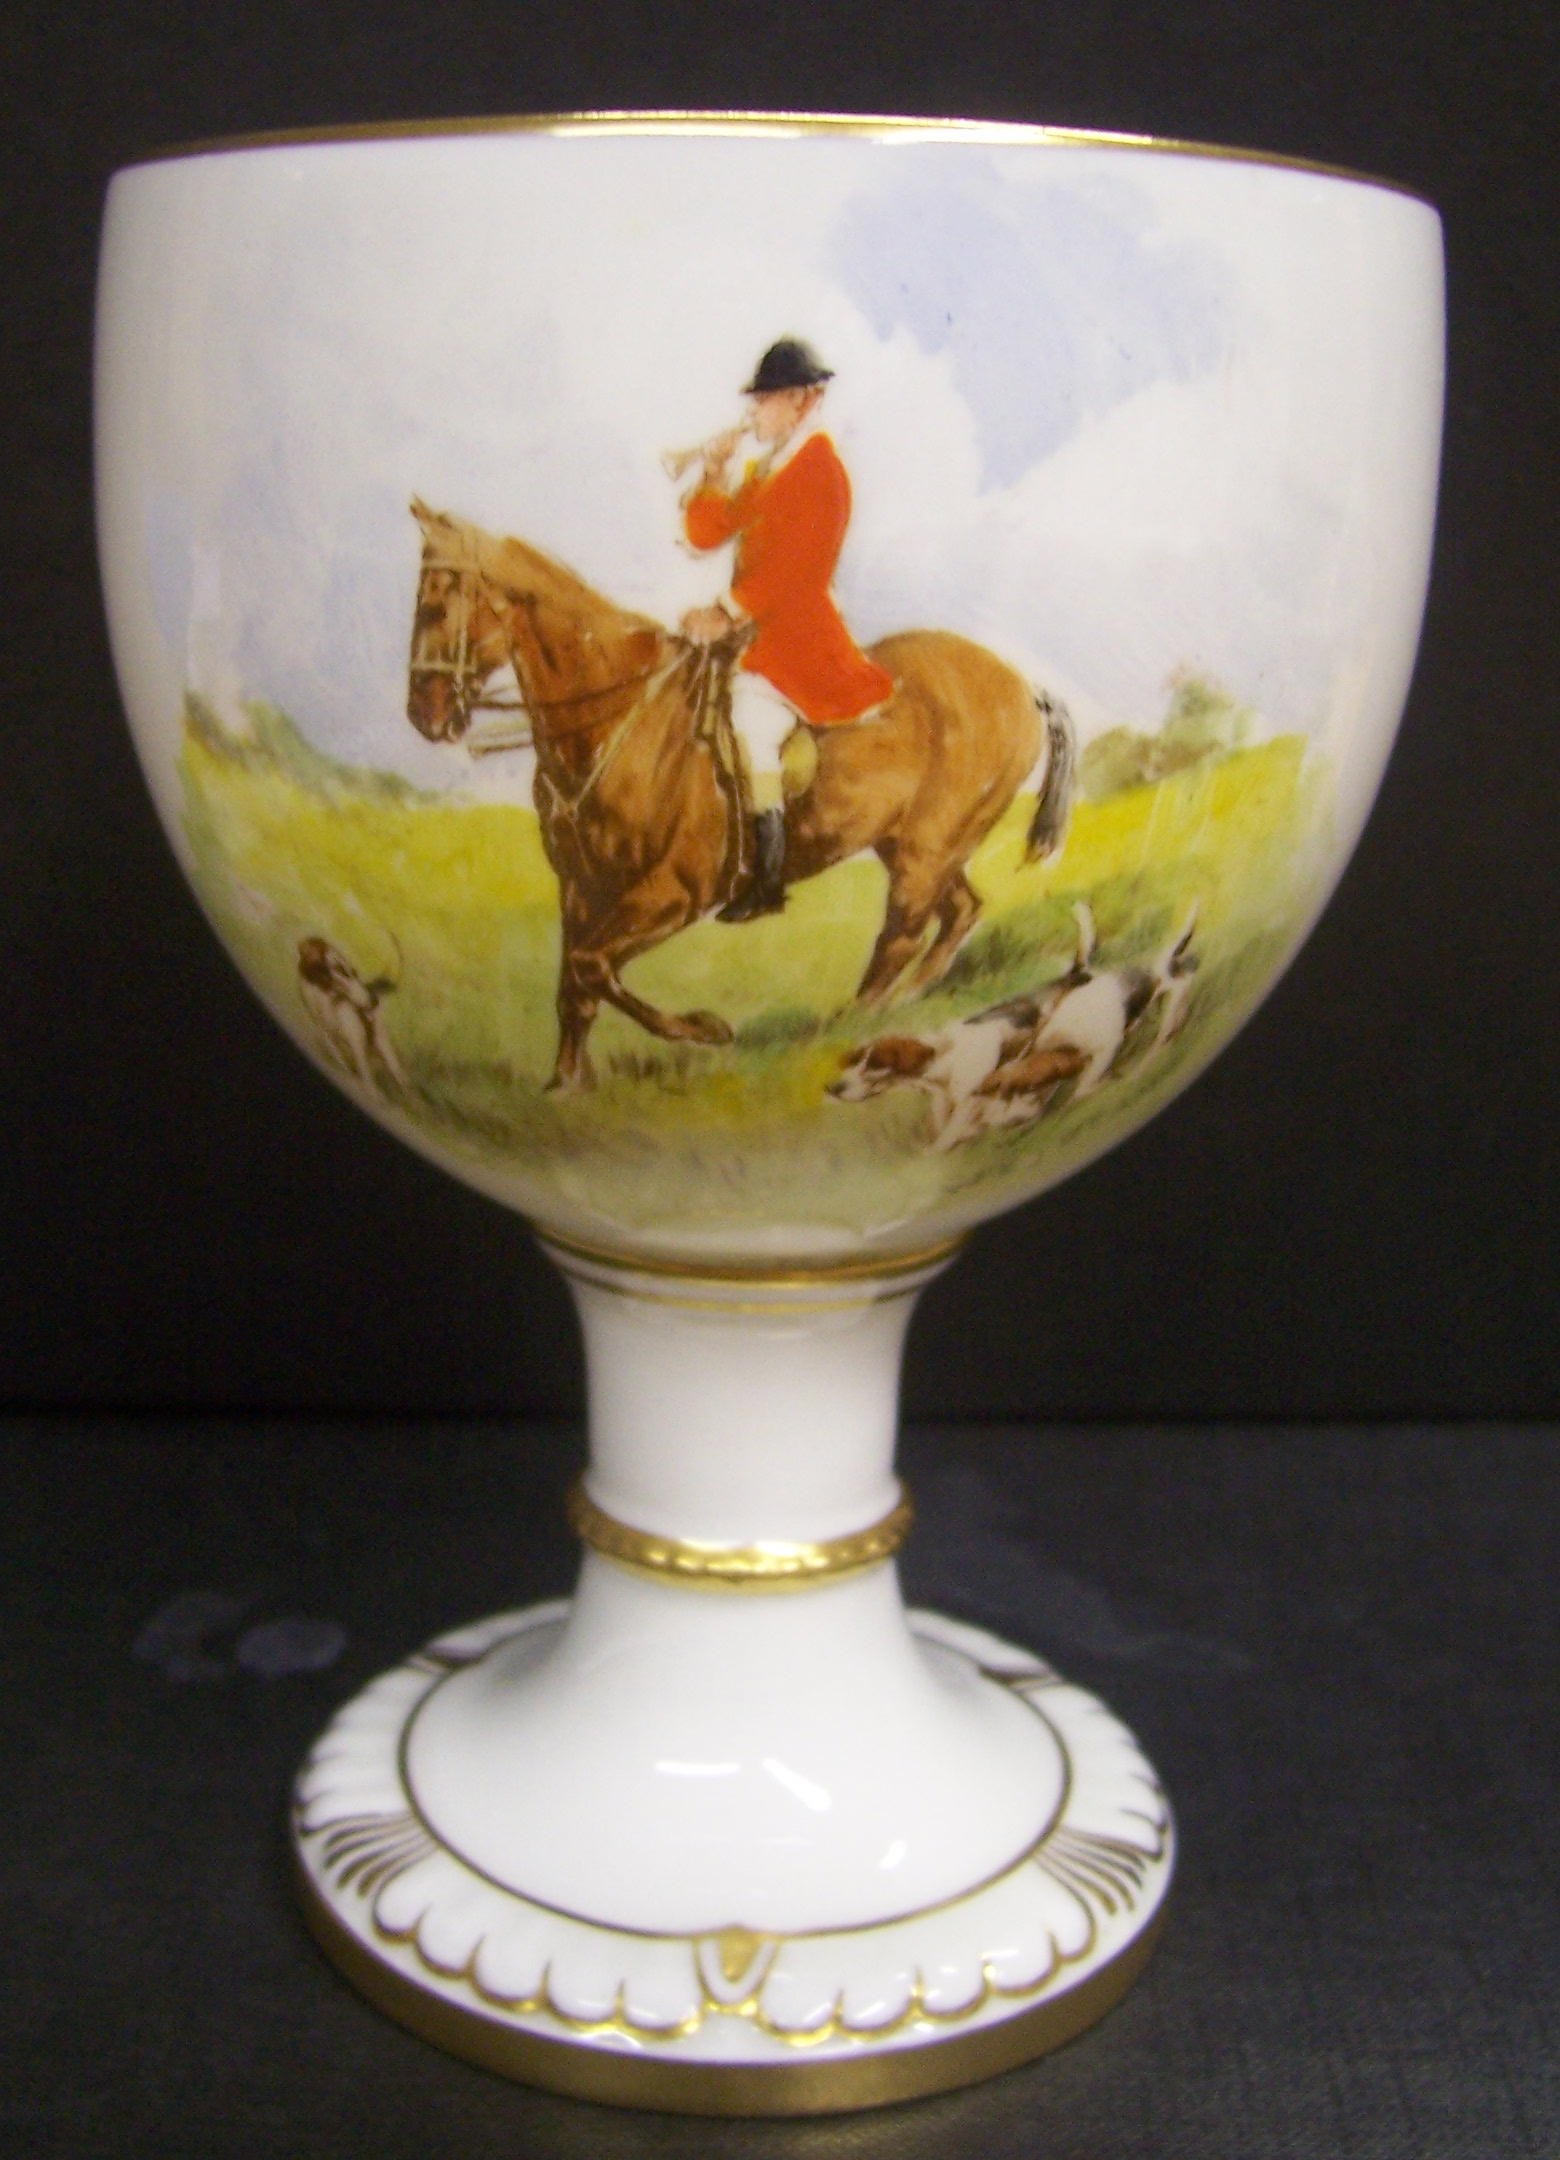 royal-crown-derby-goblet-1942-shape-hunting-scene